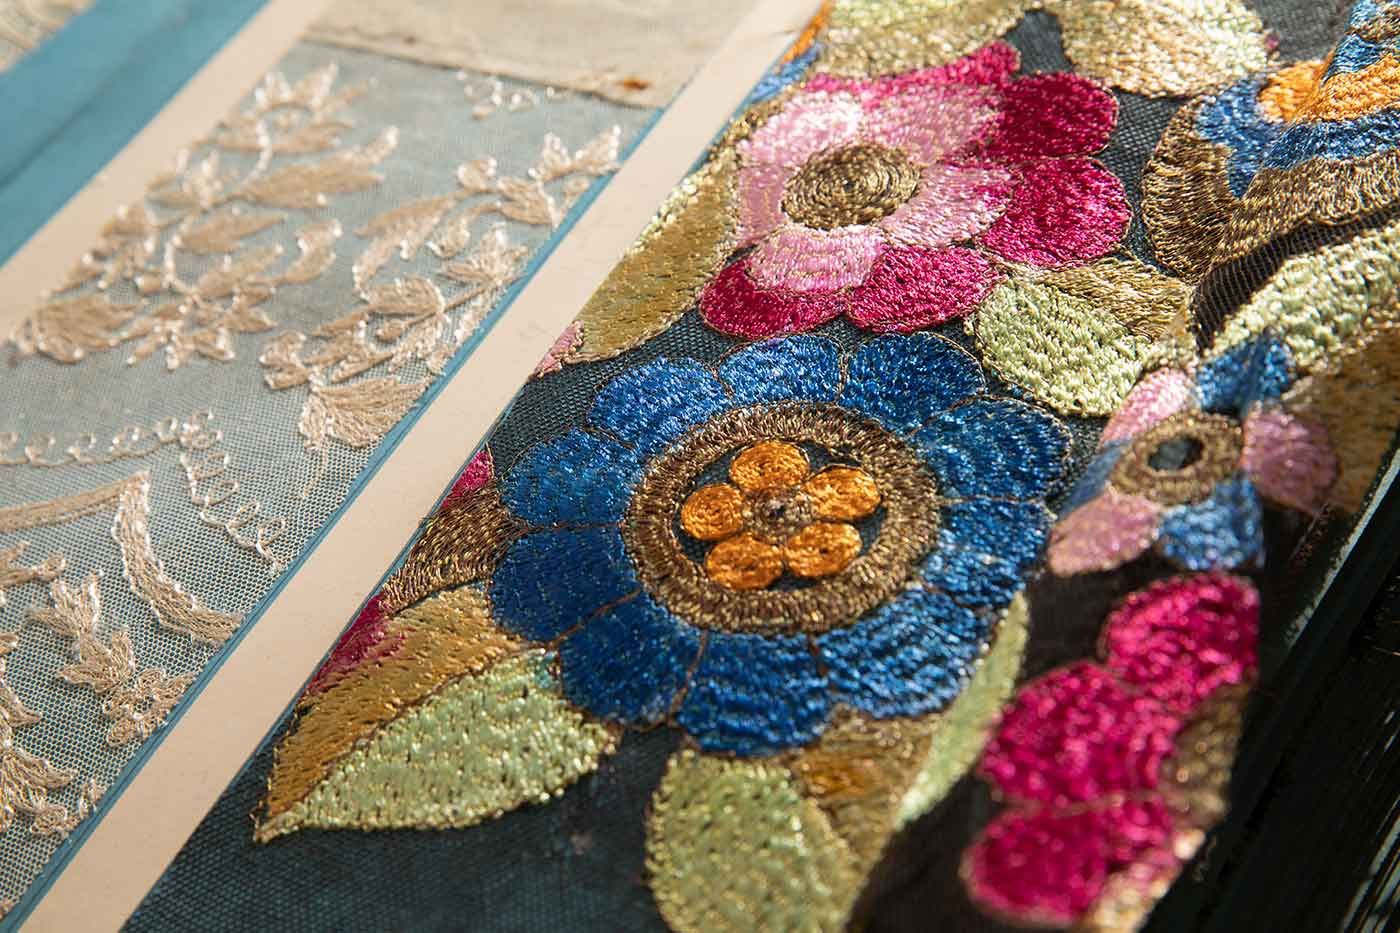 Colour photo of detail of lace samples.